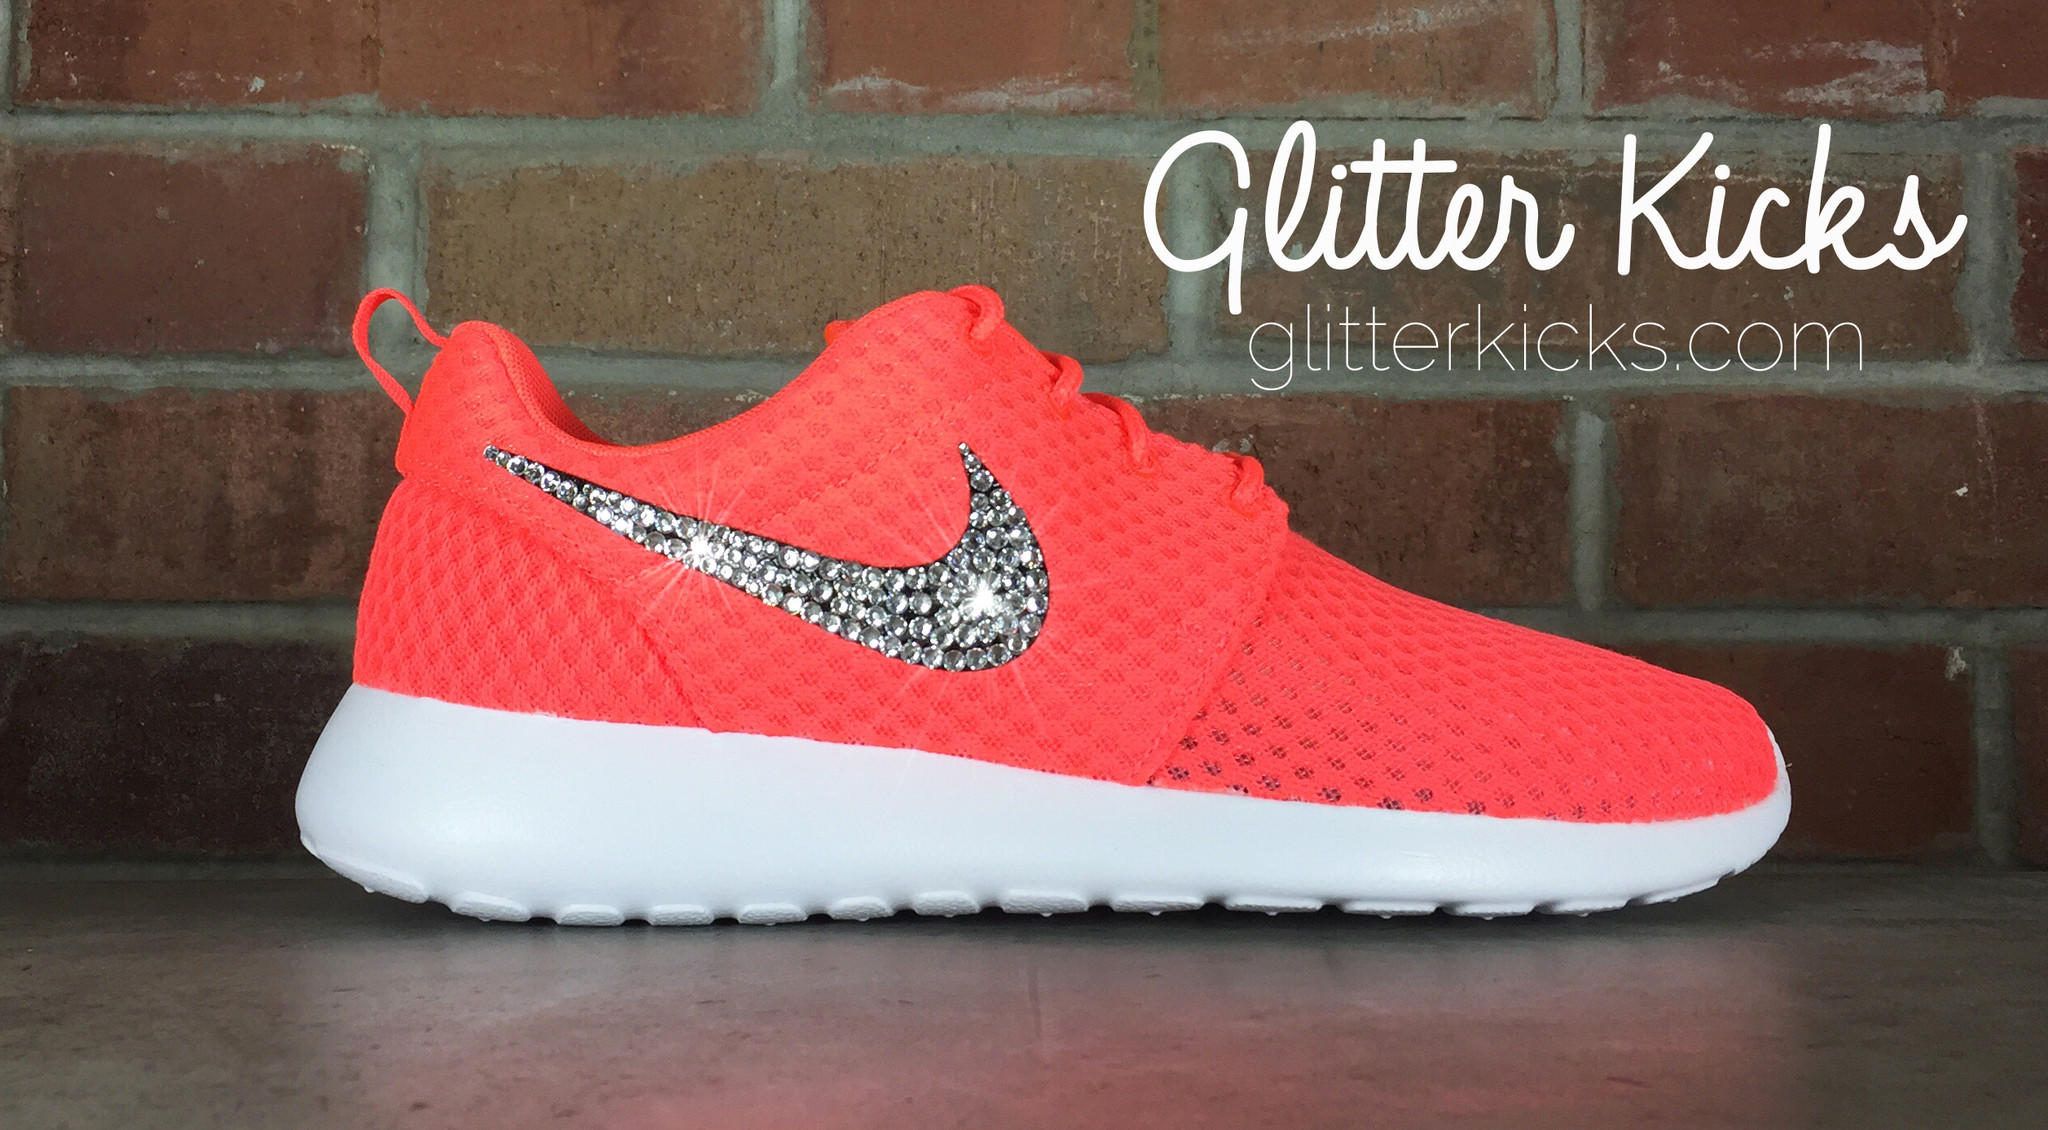 Nike Roshe One Customized by Glitter from Glitter Kicks 817f6d55b3